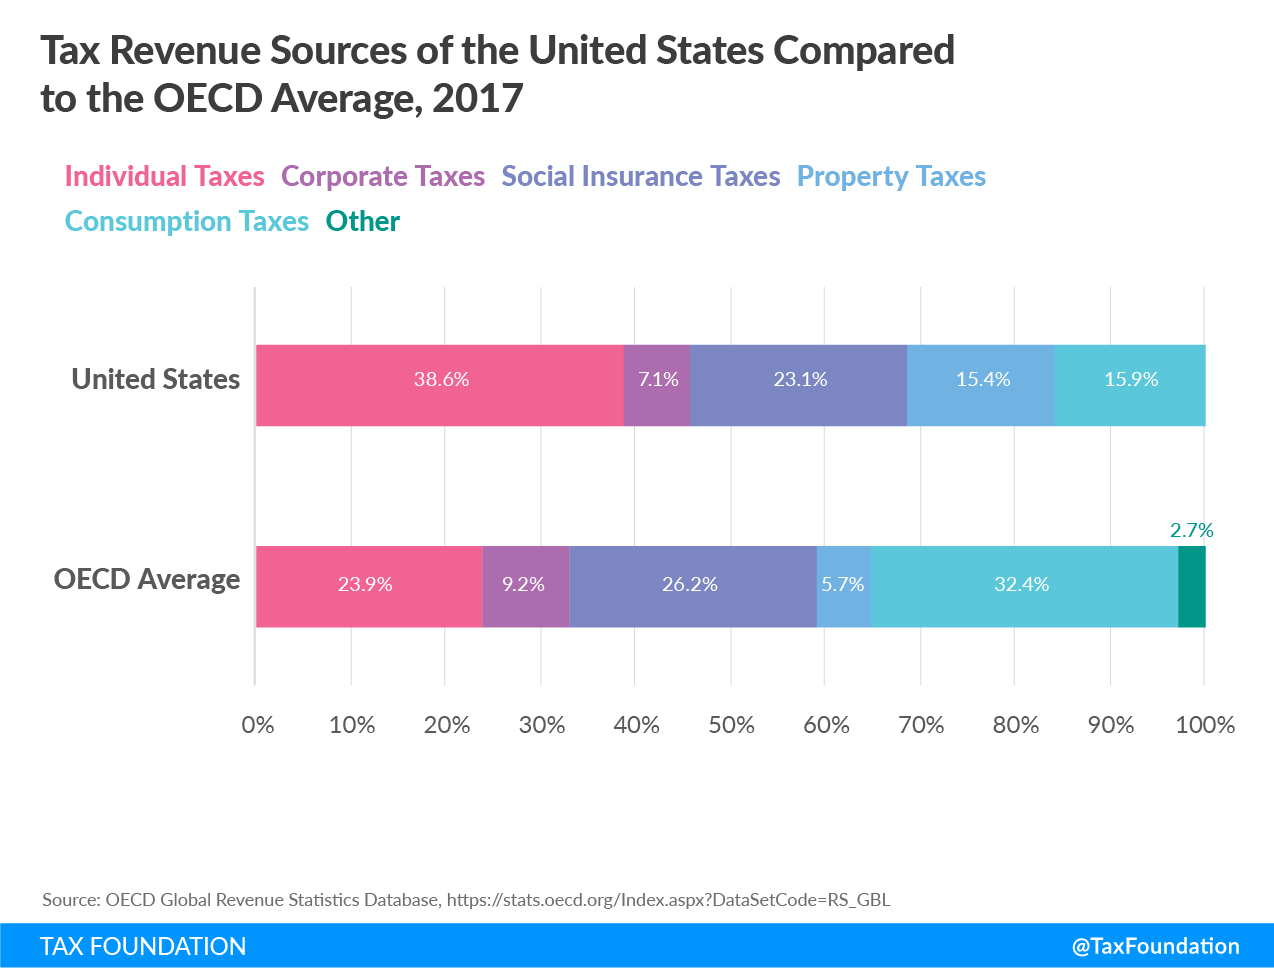 tax revenue by source, united states vs oecd government tax revenue sources 2017